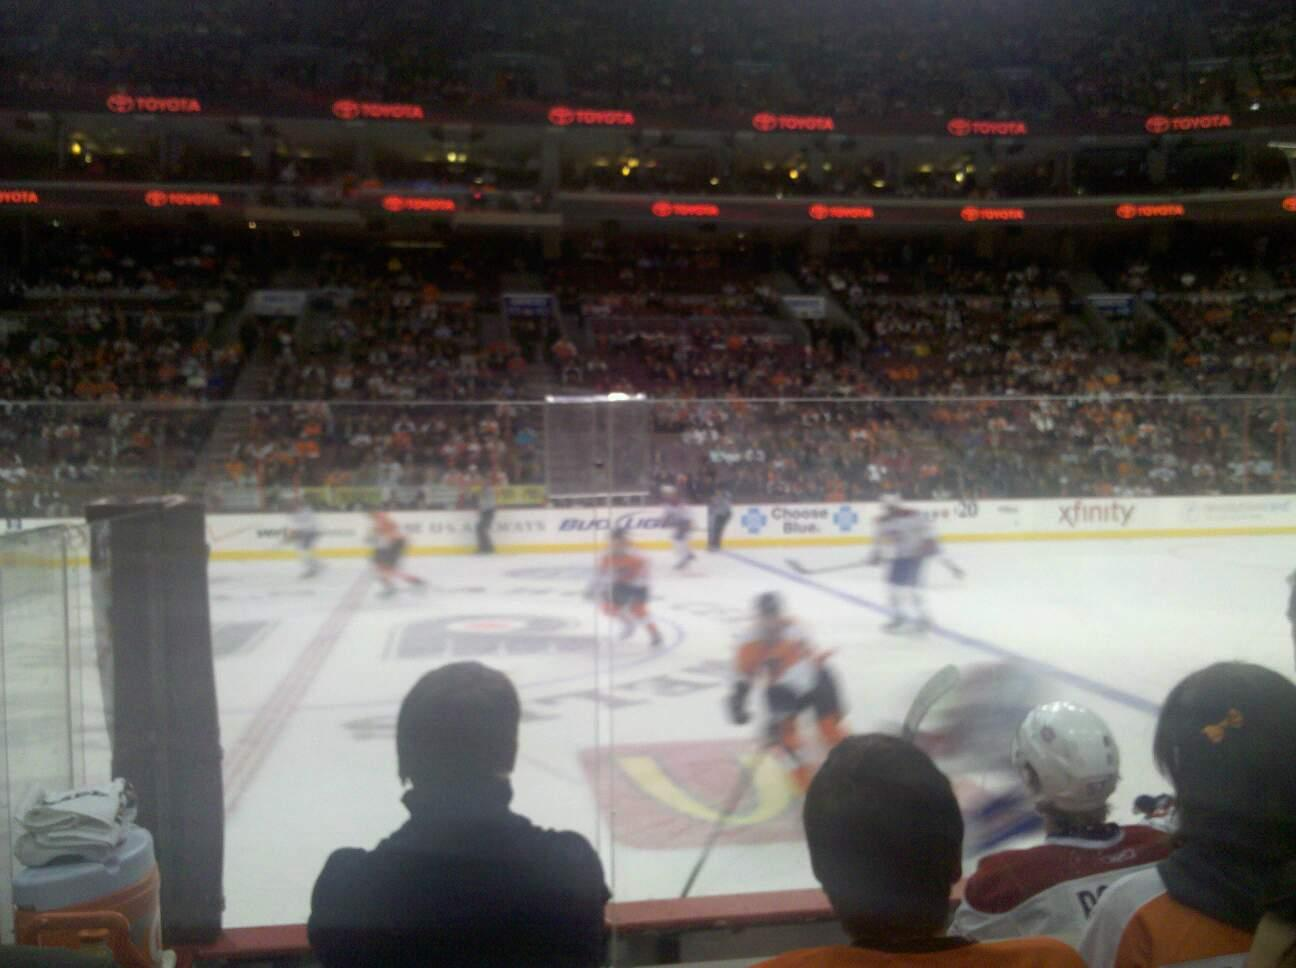 Wells Fargo Center Section 101 Row 5 Seat 11